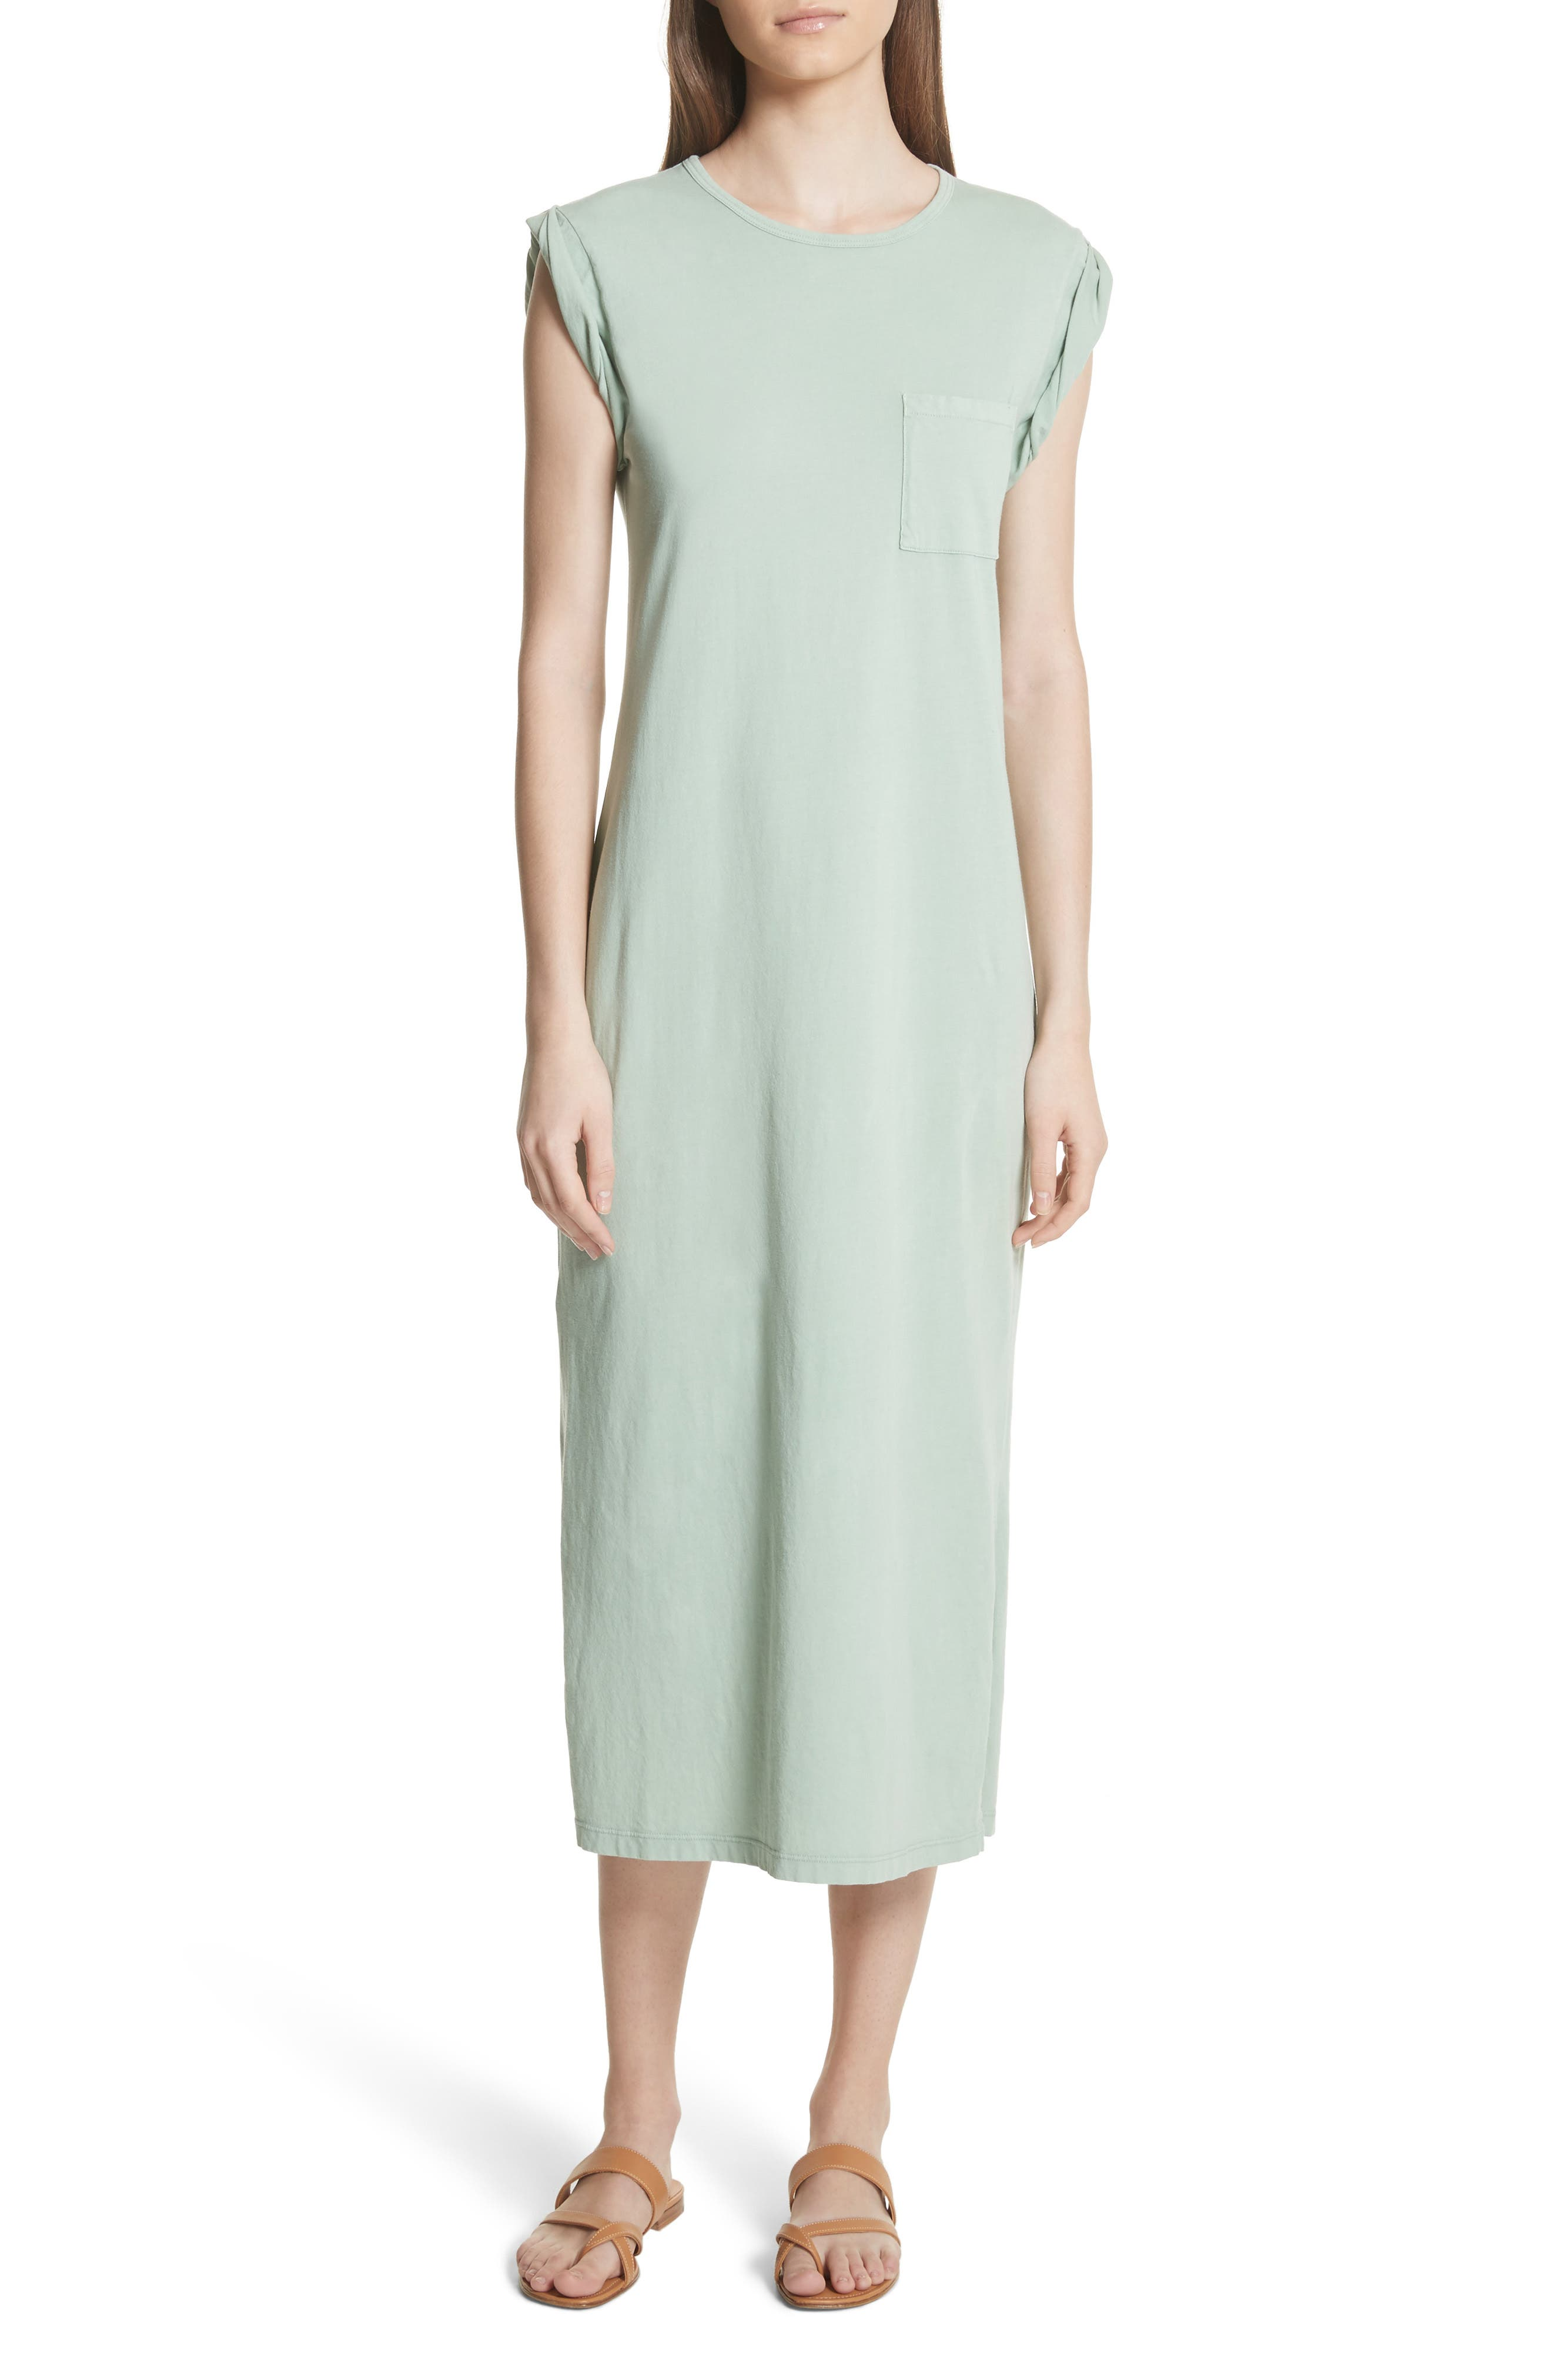 Muscle P Relaxed T-Shirt Dress,                         Main,                         color, 391